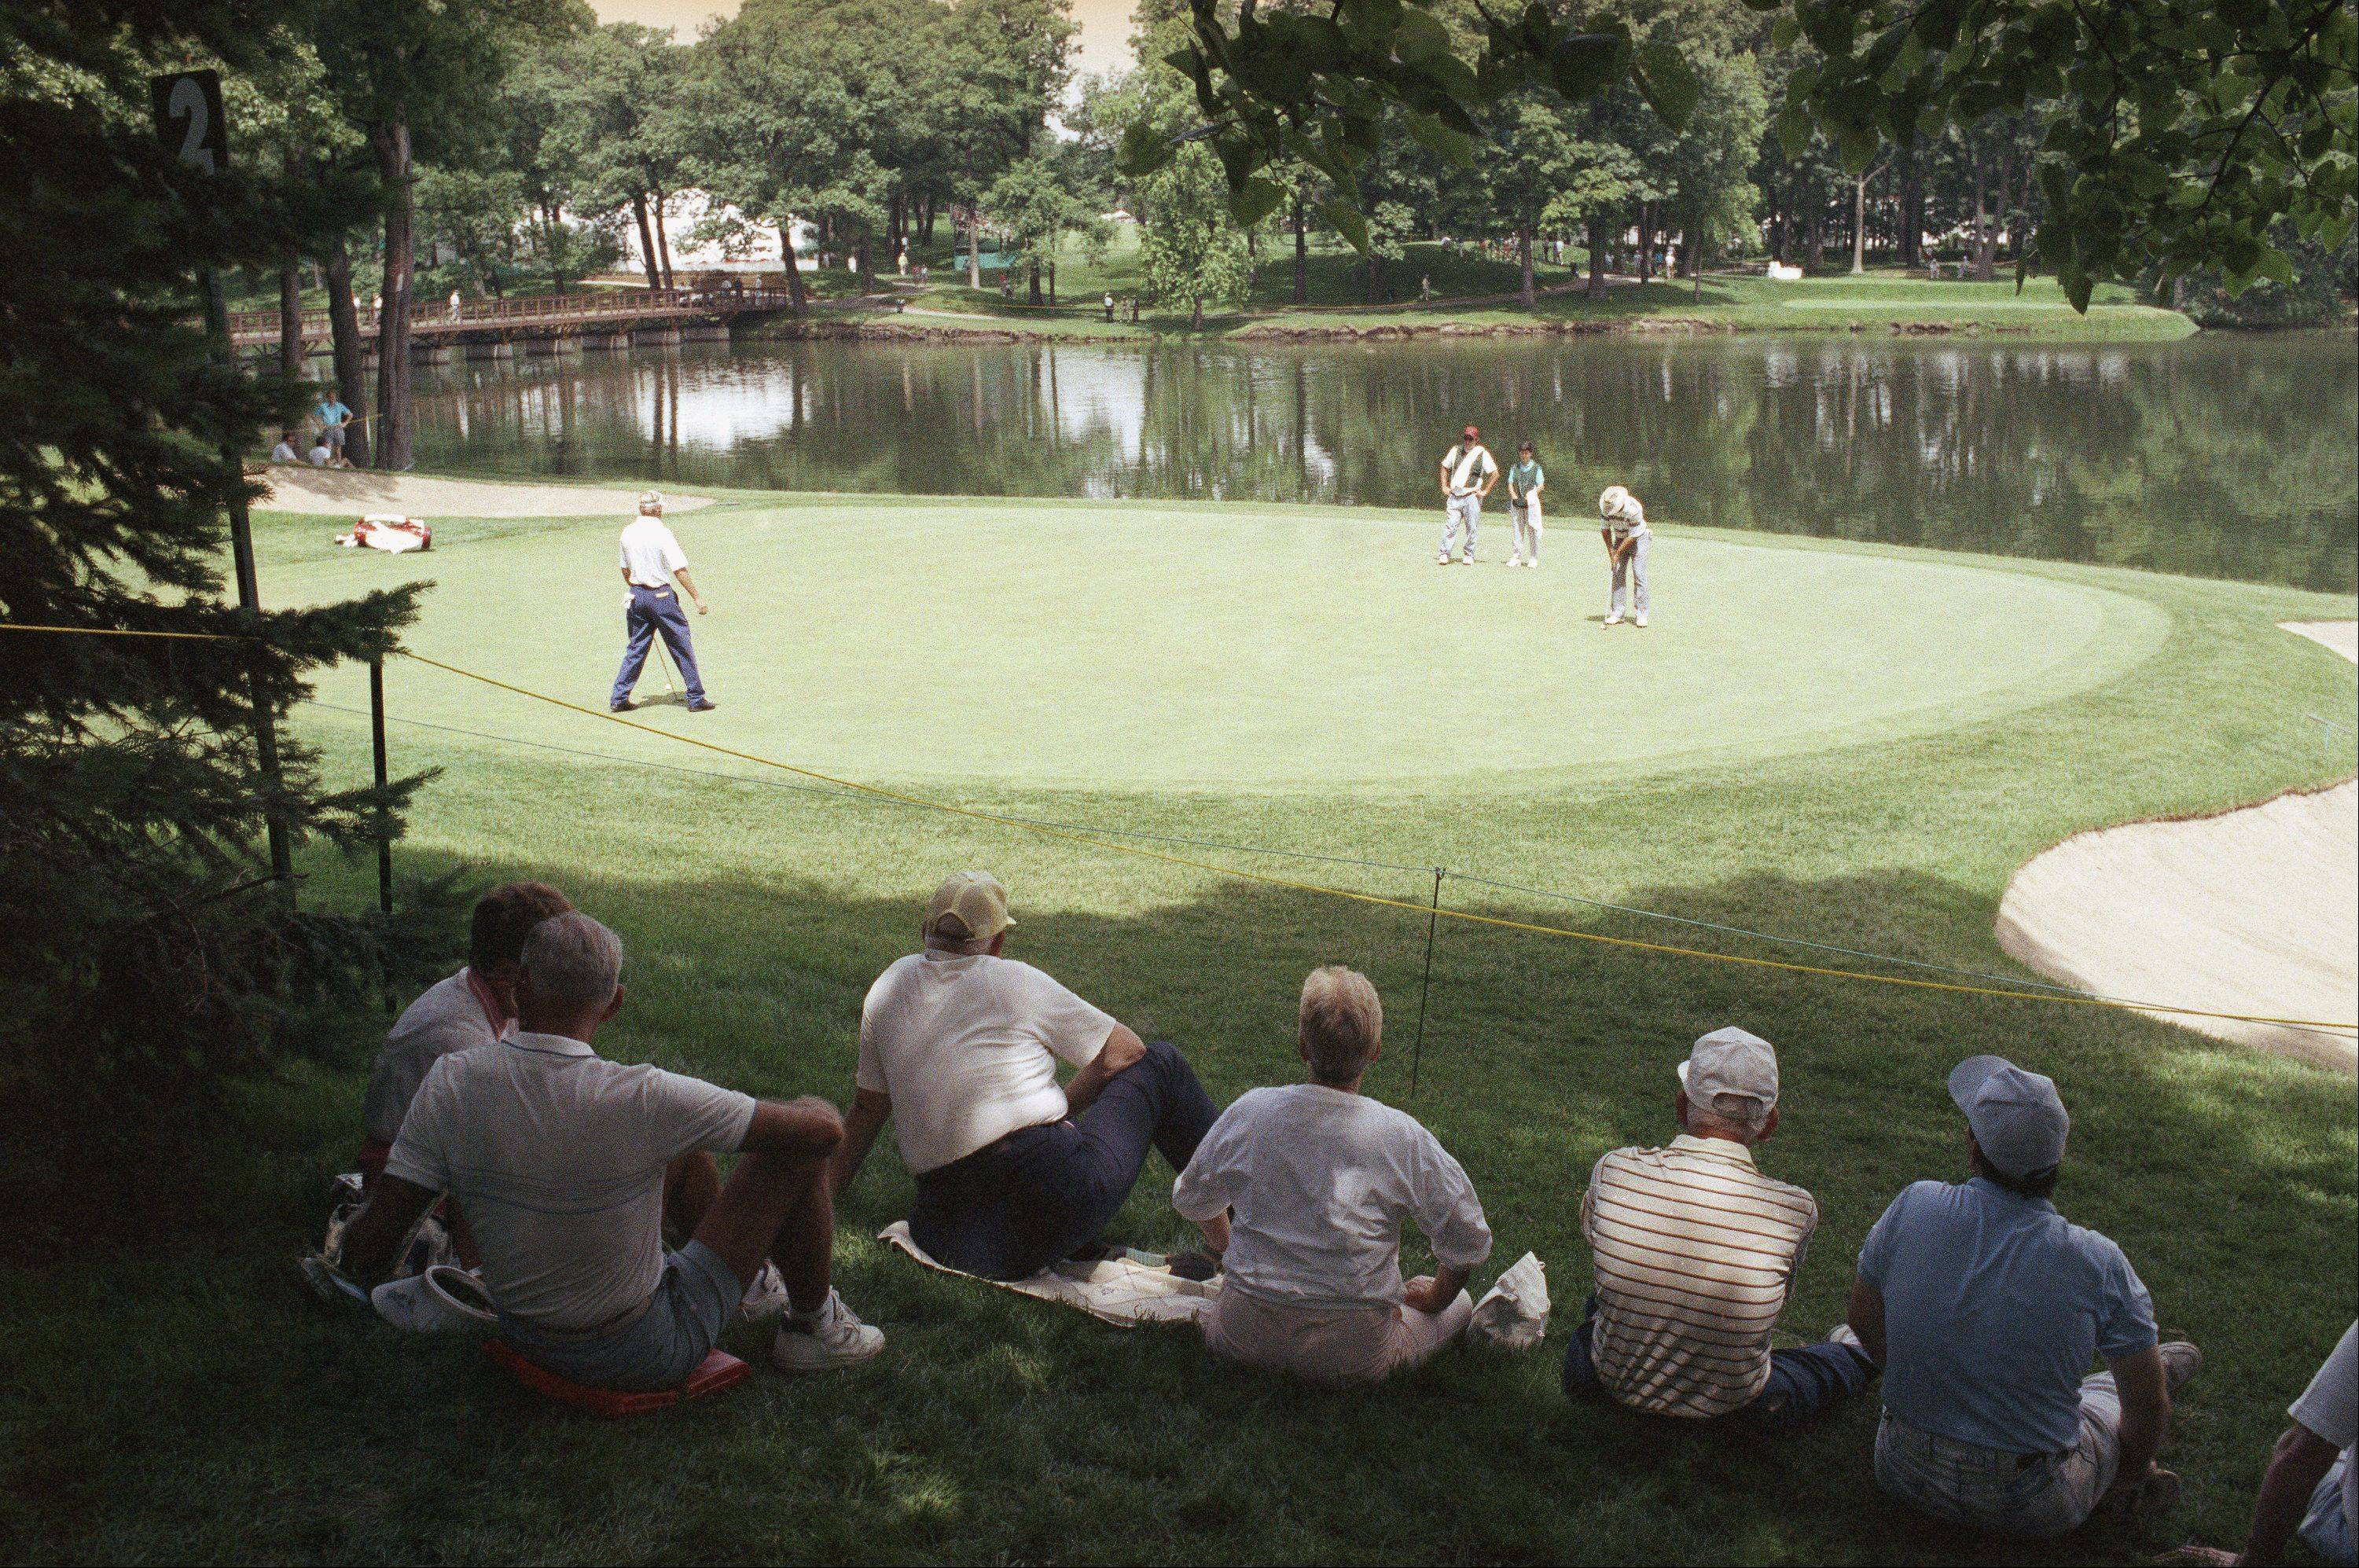 People in the gallery watch golfers on the No. 2 green at Medinah Country Club, Medinah Monday, June 11, 1990. The golfers are practicing for the U.S. Open, which begins Thursday.